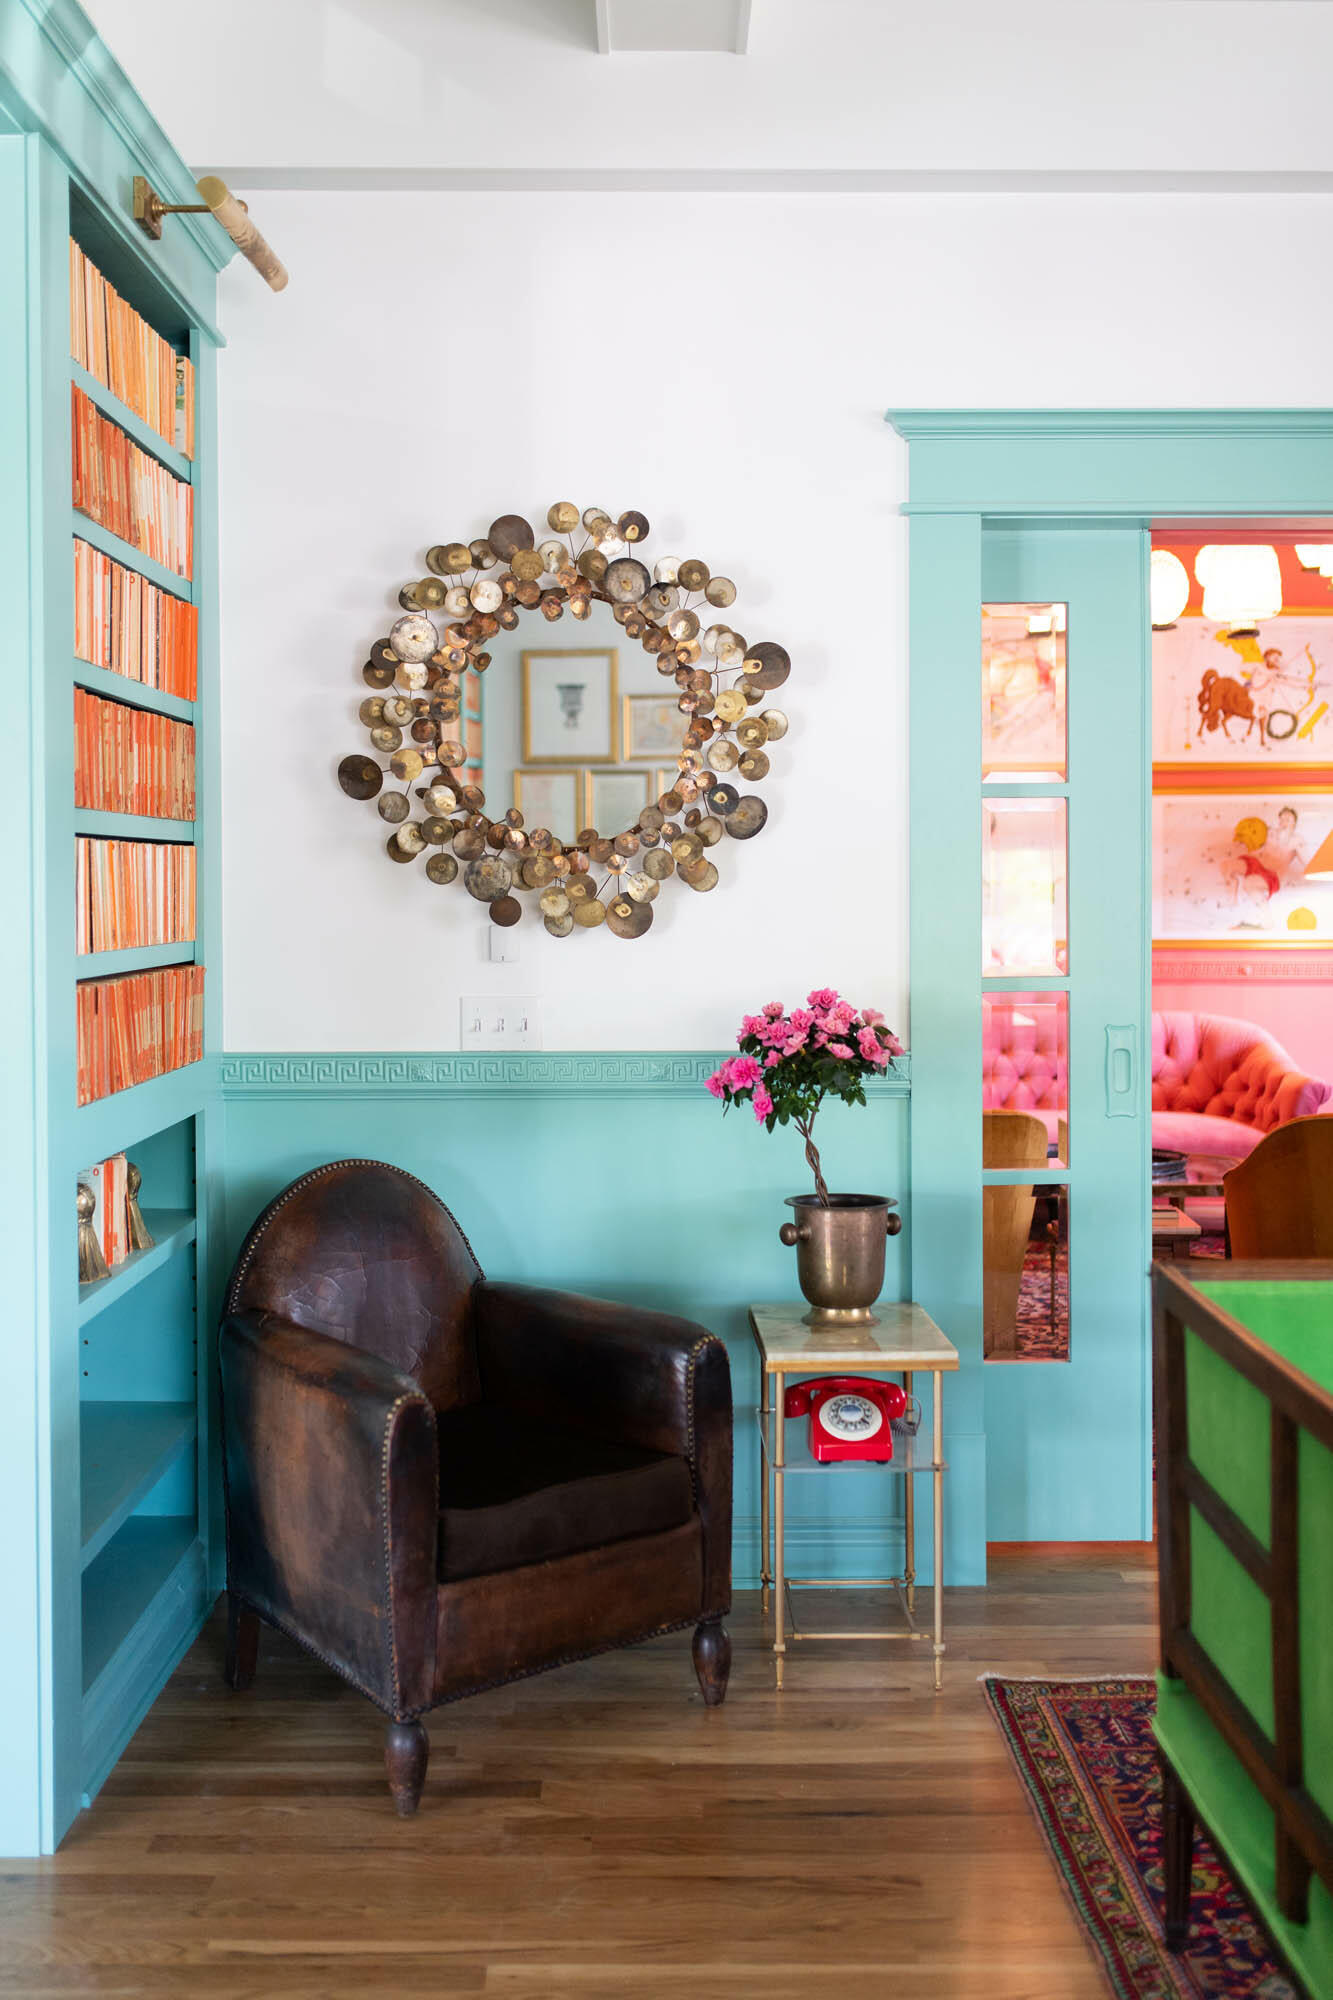 lounge area with leather chair and blue book shelf